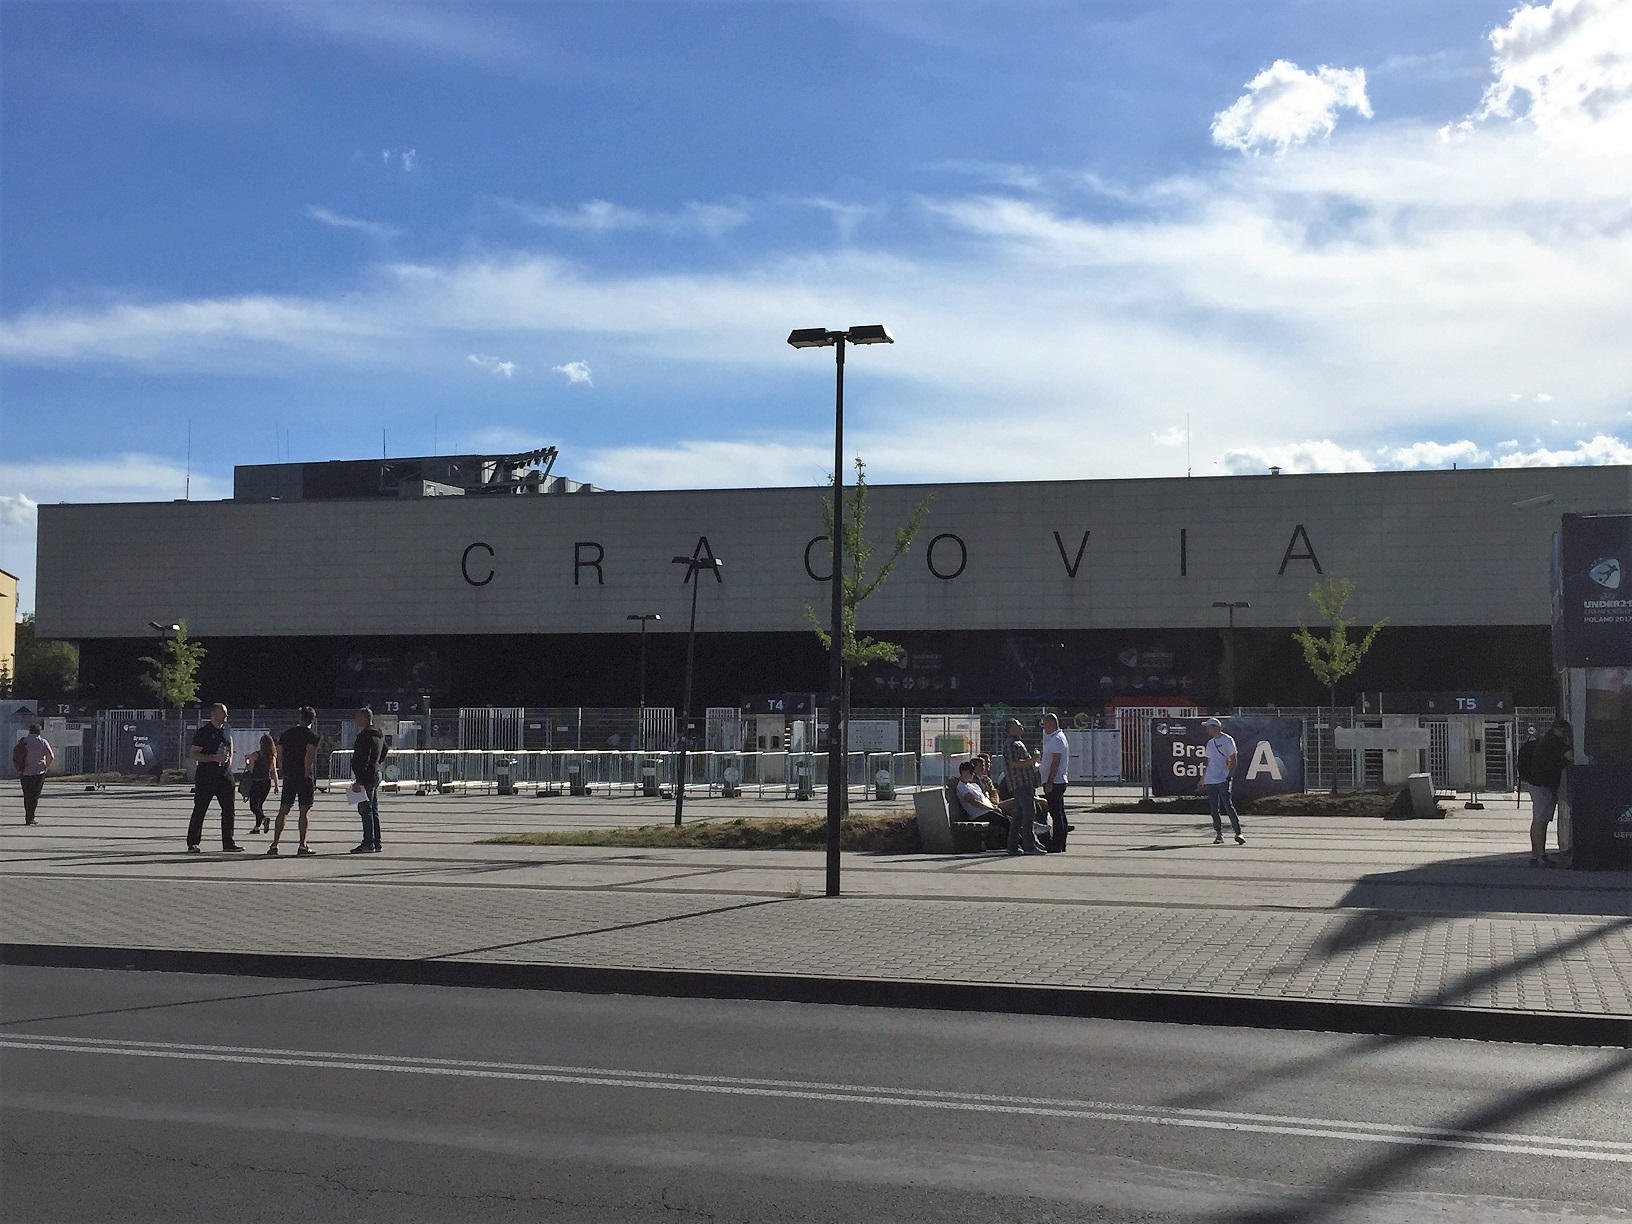 Estadio del KS Cracovia.